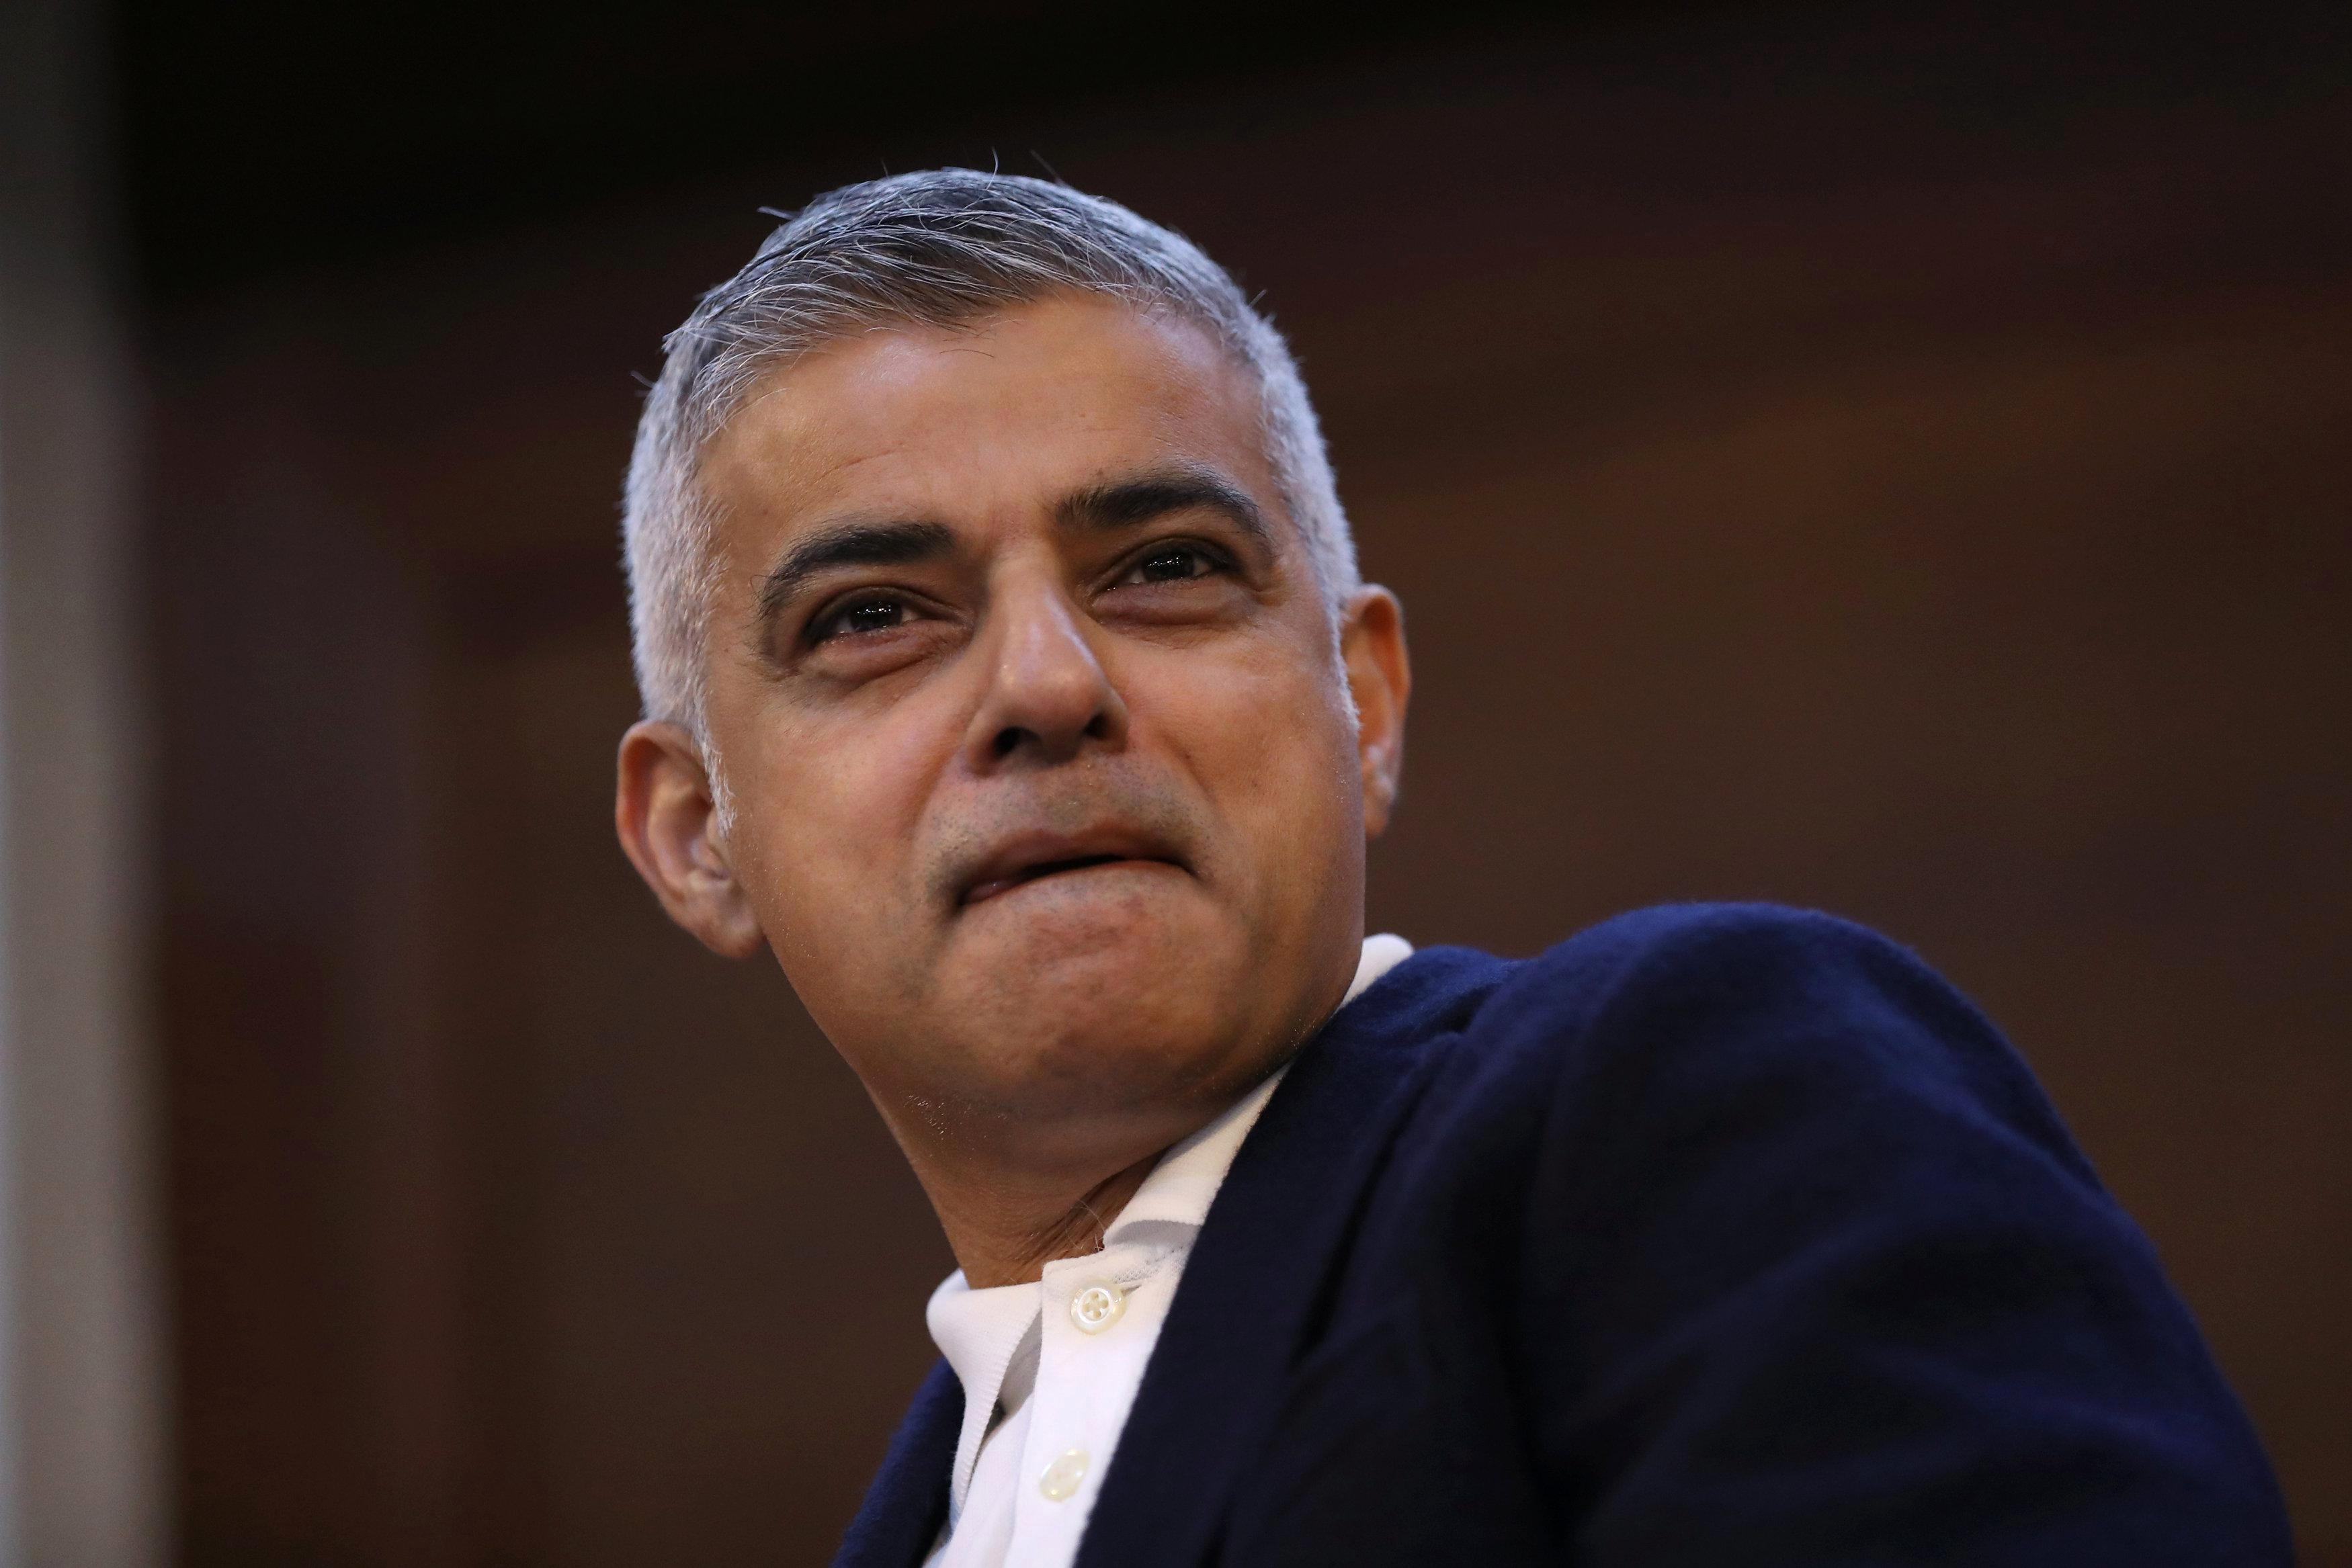 Brits could be offered houses before foreign buyers snap them up under new rules from Sadiq Khan to stop homes lying empty